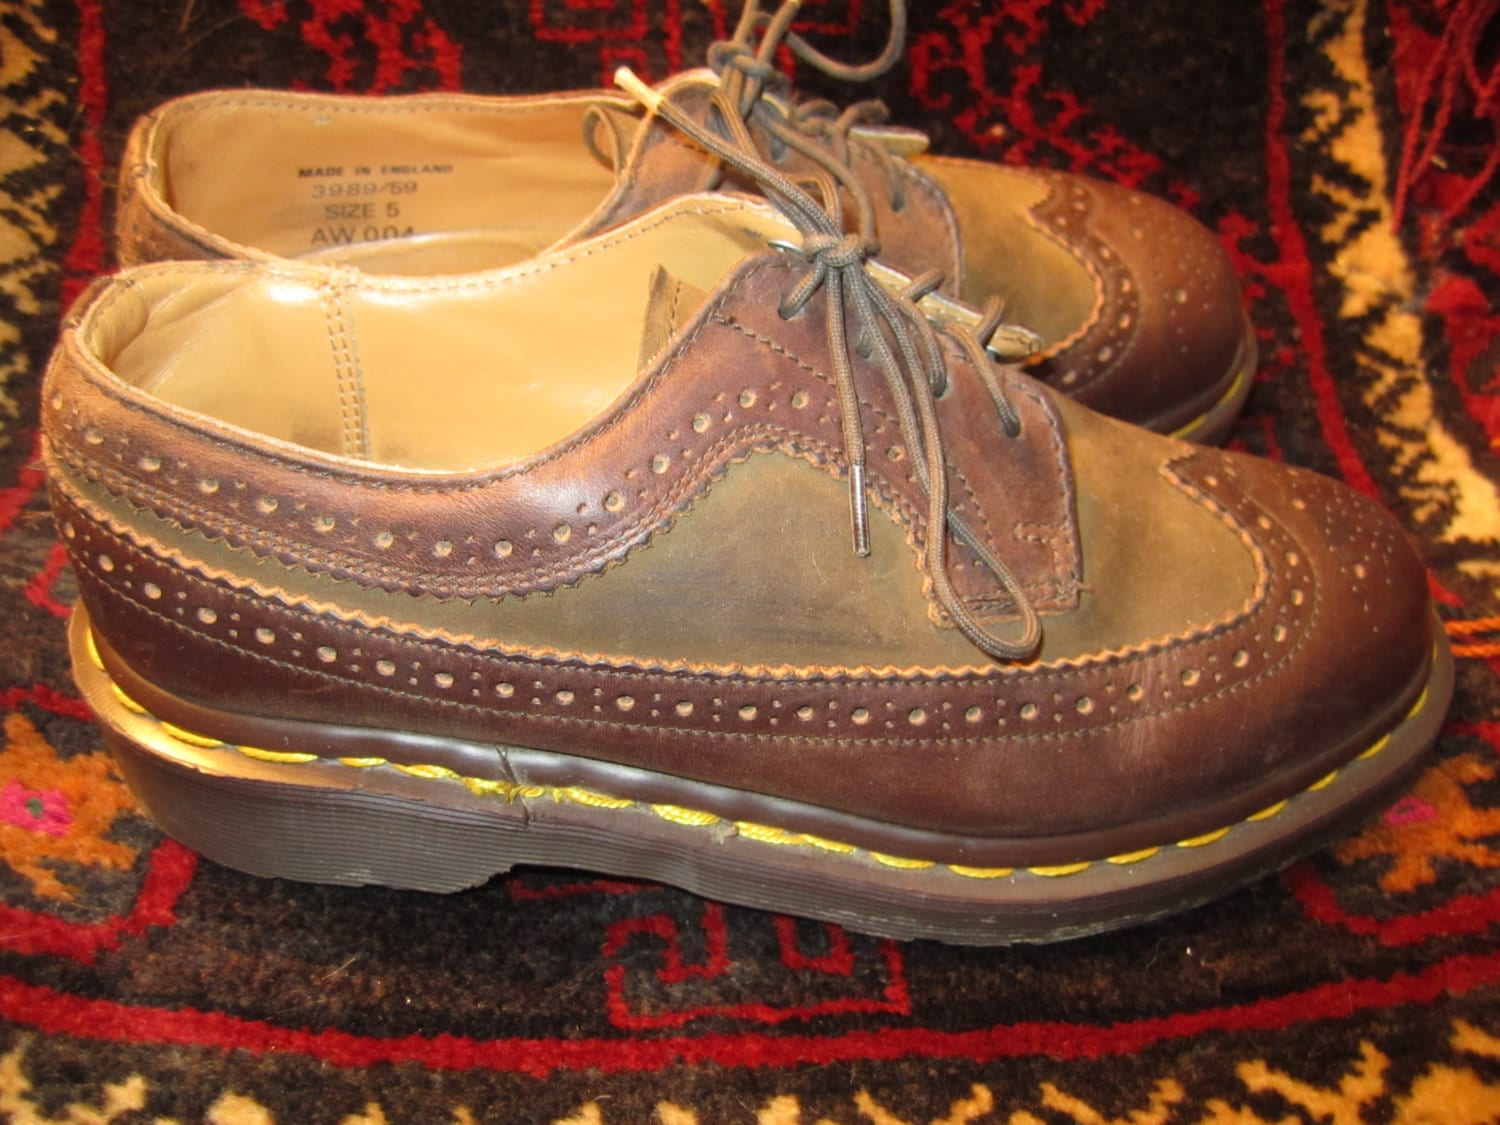 Doc Made Marten marron Taille ailerons 5 Made Doc in England 5f89c6